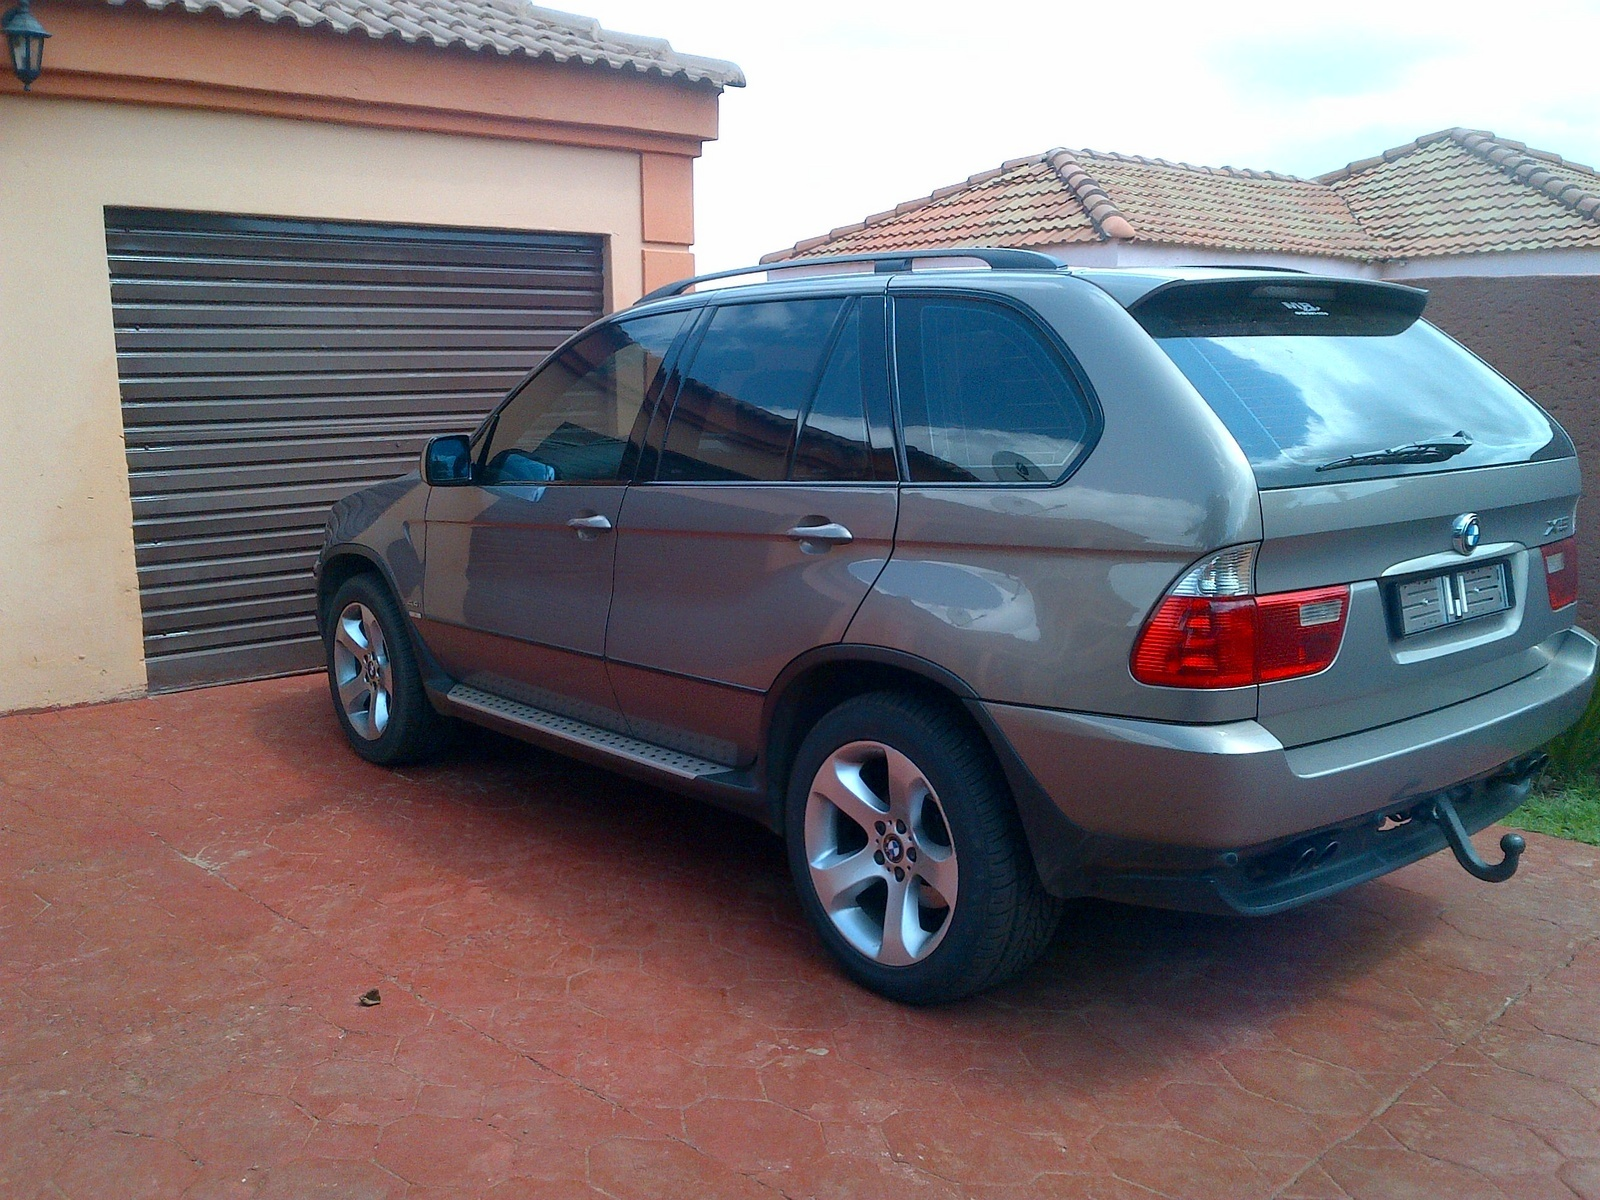 hight resolution of greetings my bmw x5 e53 n62 4 4i 2004 model has water dripping under the car